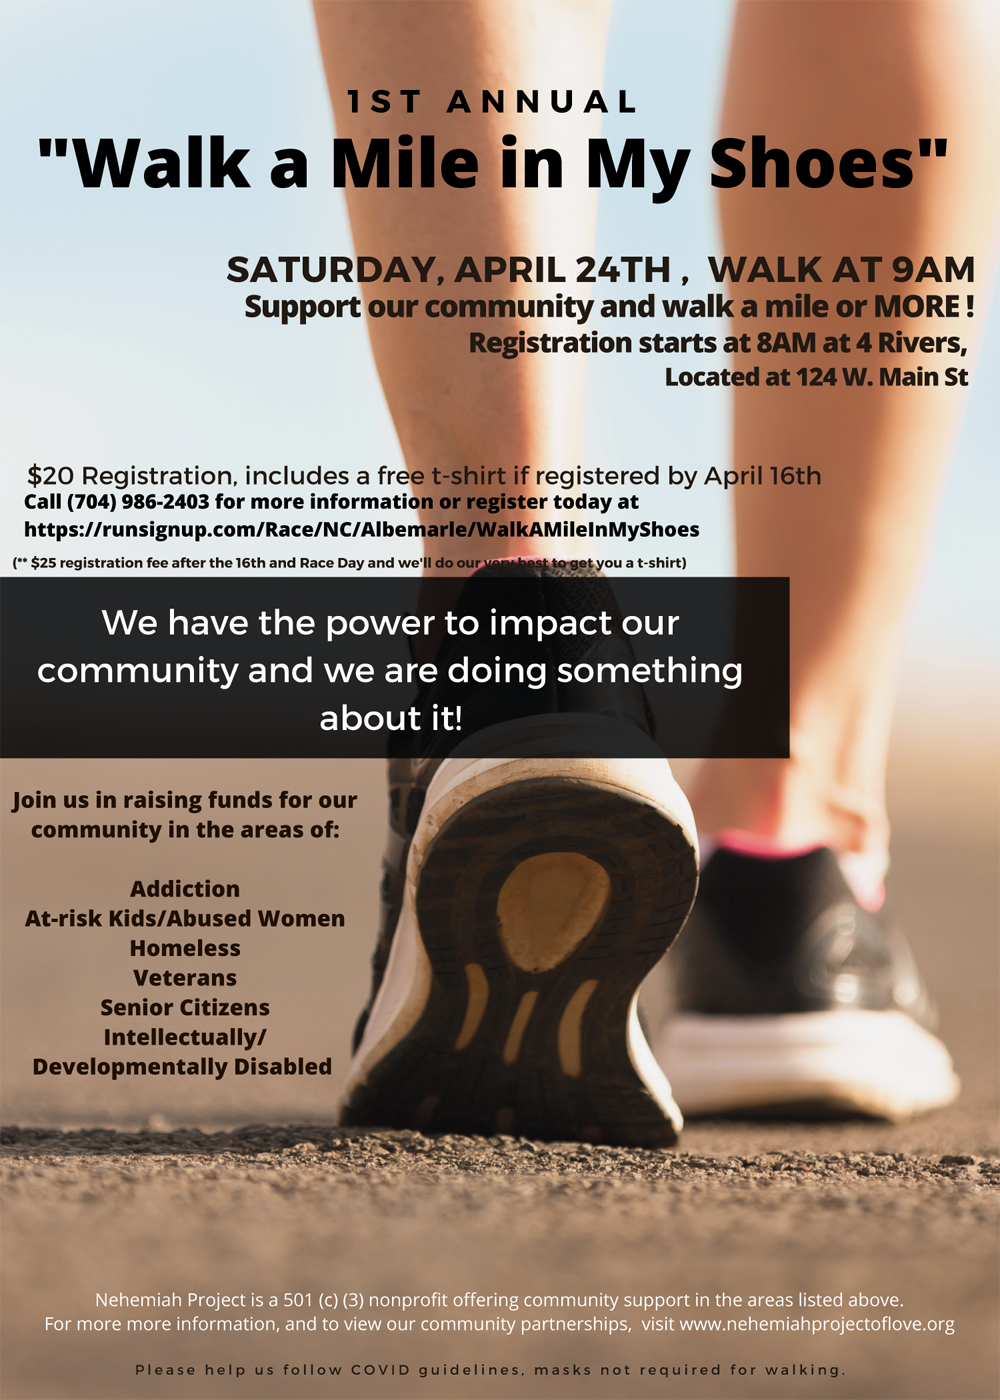 2021 Walk a Mile in My Shoes Event from Nehemiah Project